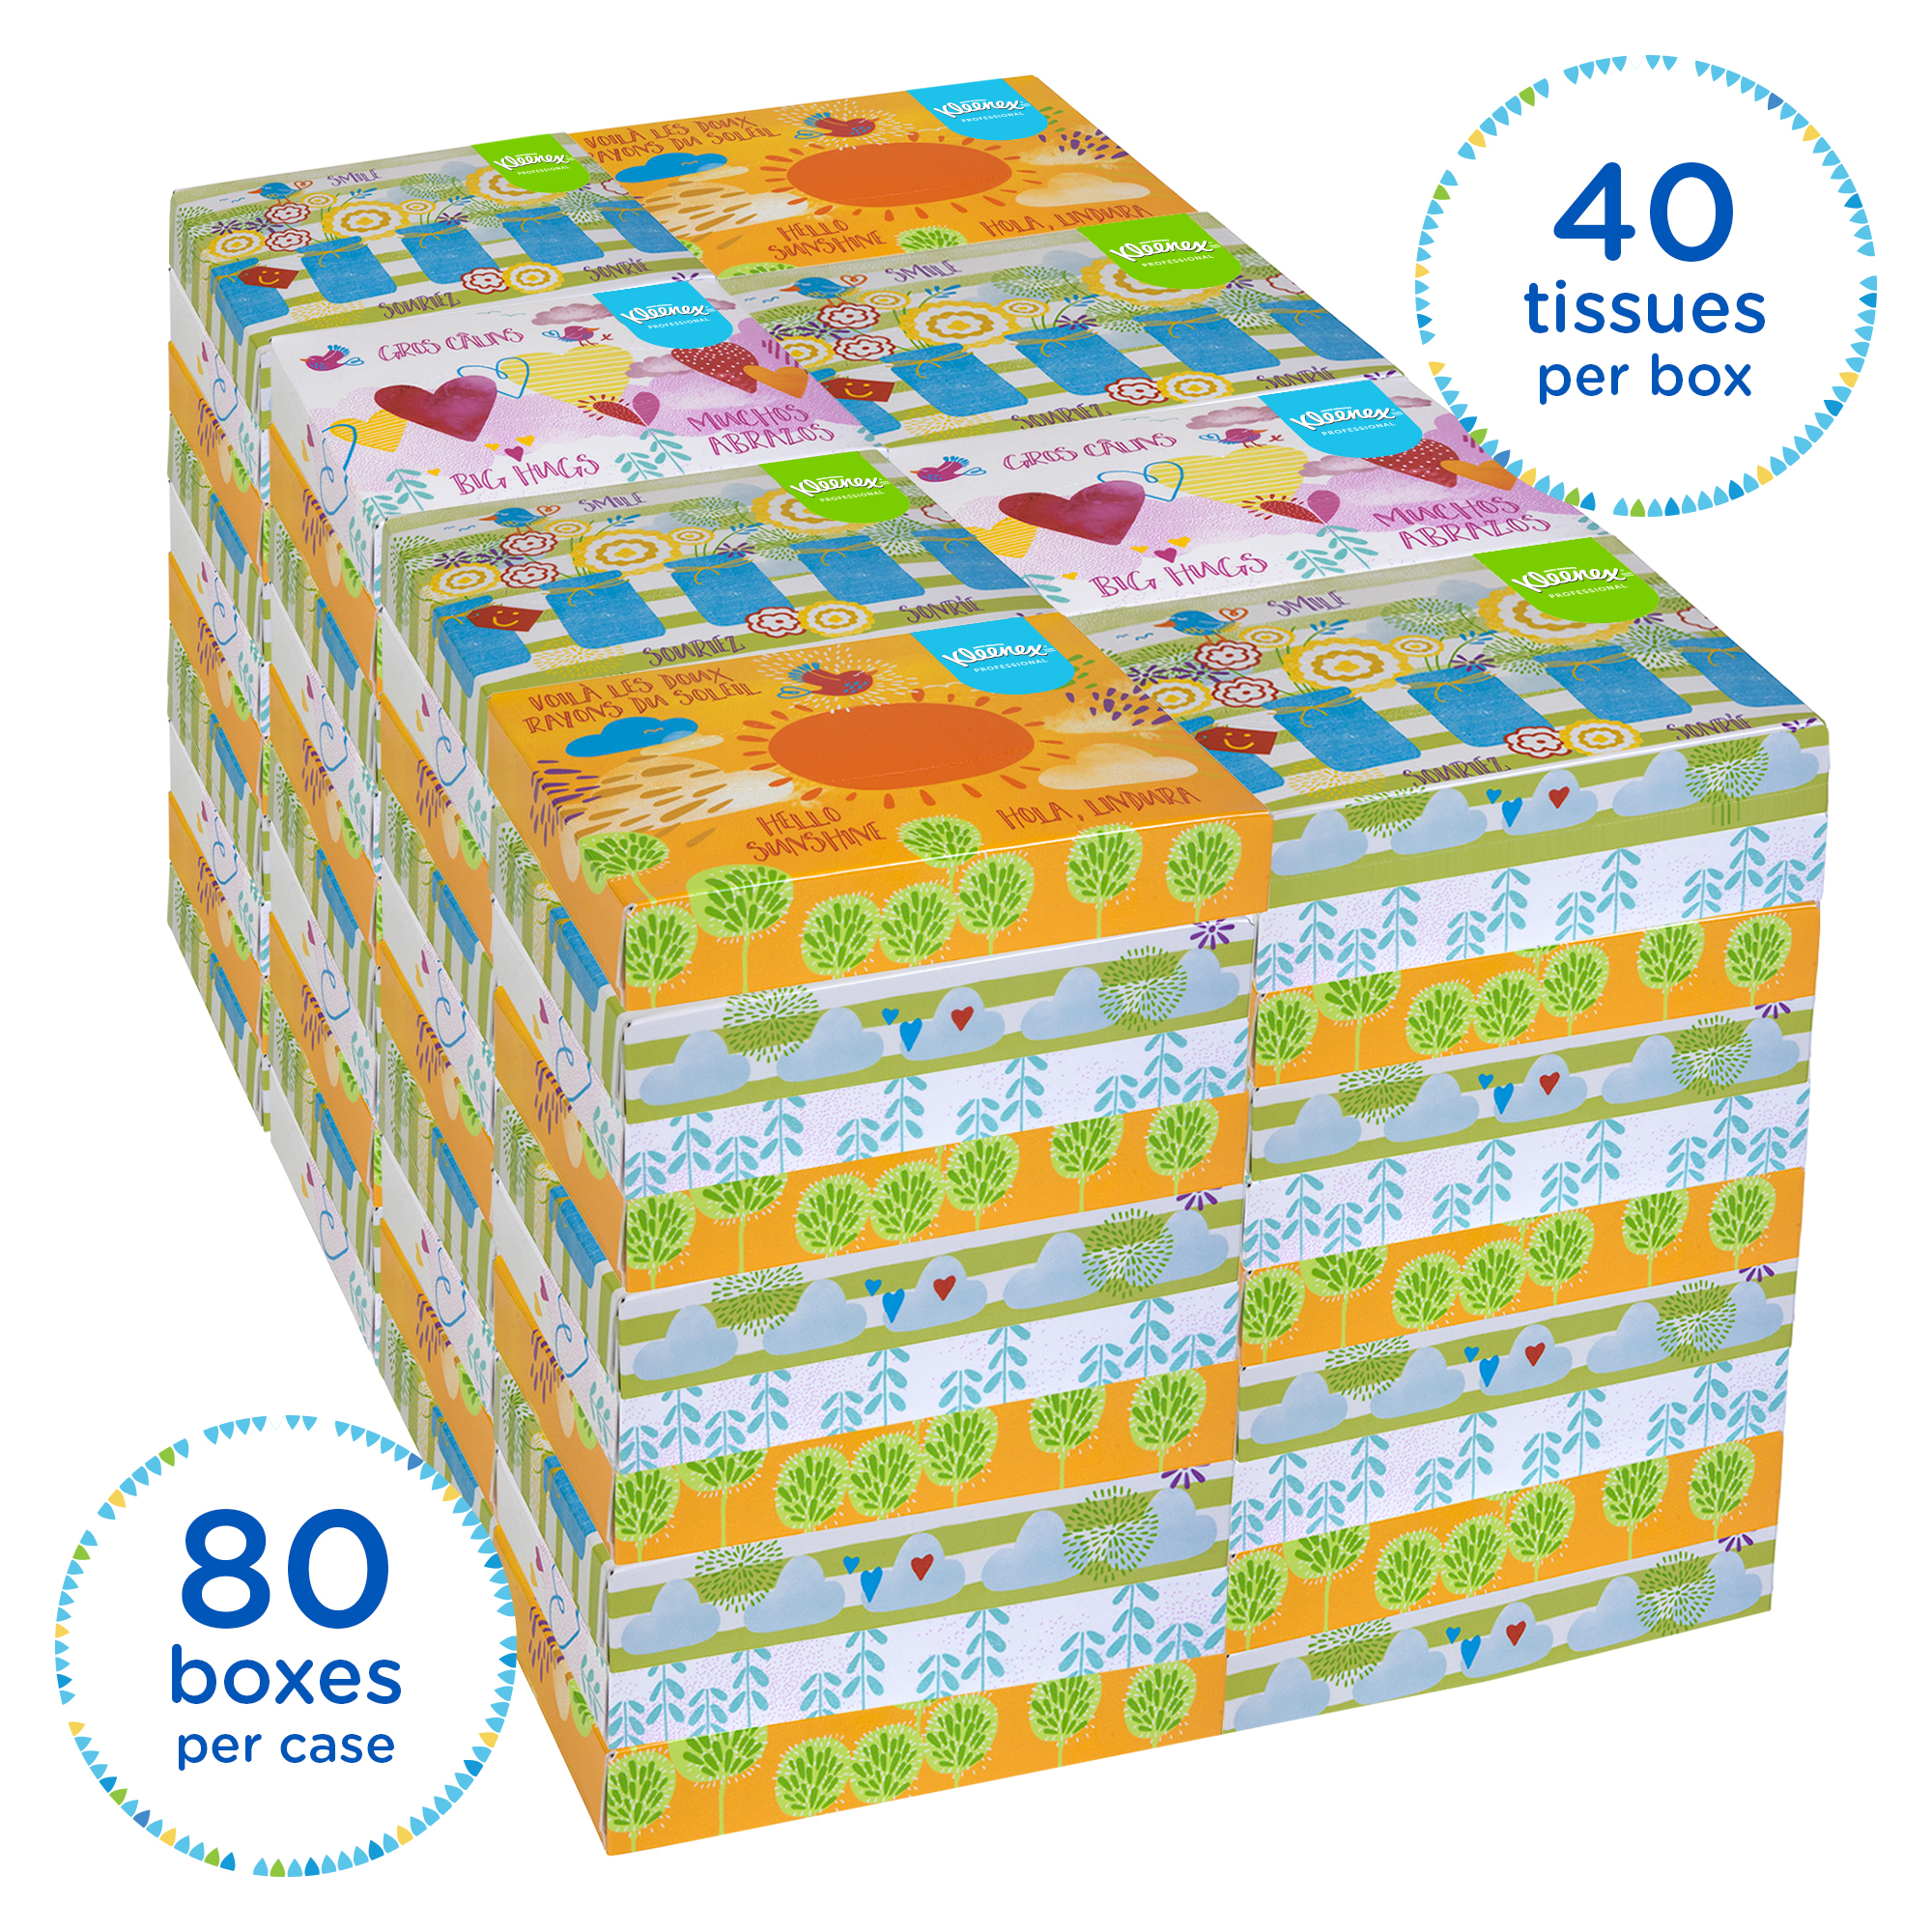 Kleenex Professional Facial Tissue for Business (21195), Flat Tissue Boxes, 80 Junior Boxes / Case,